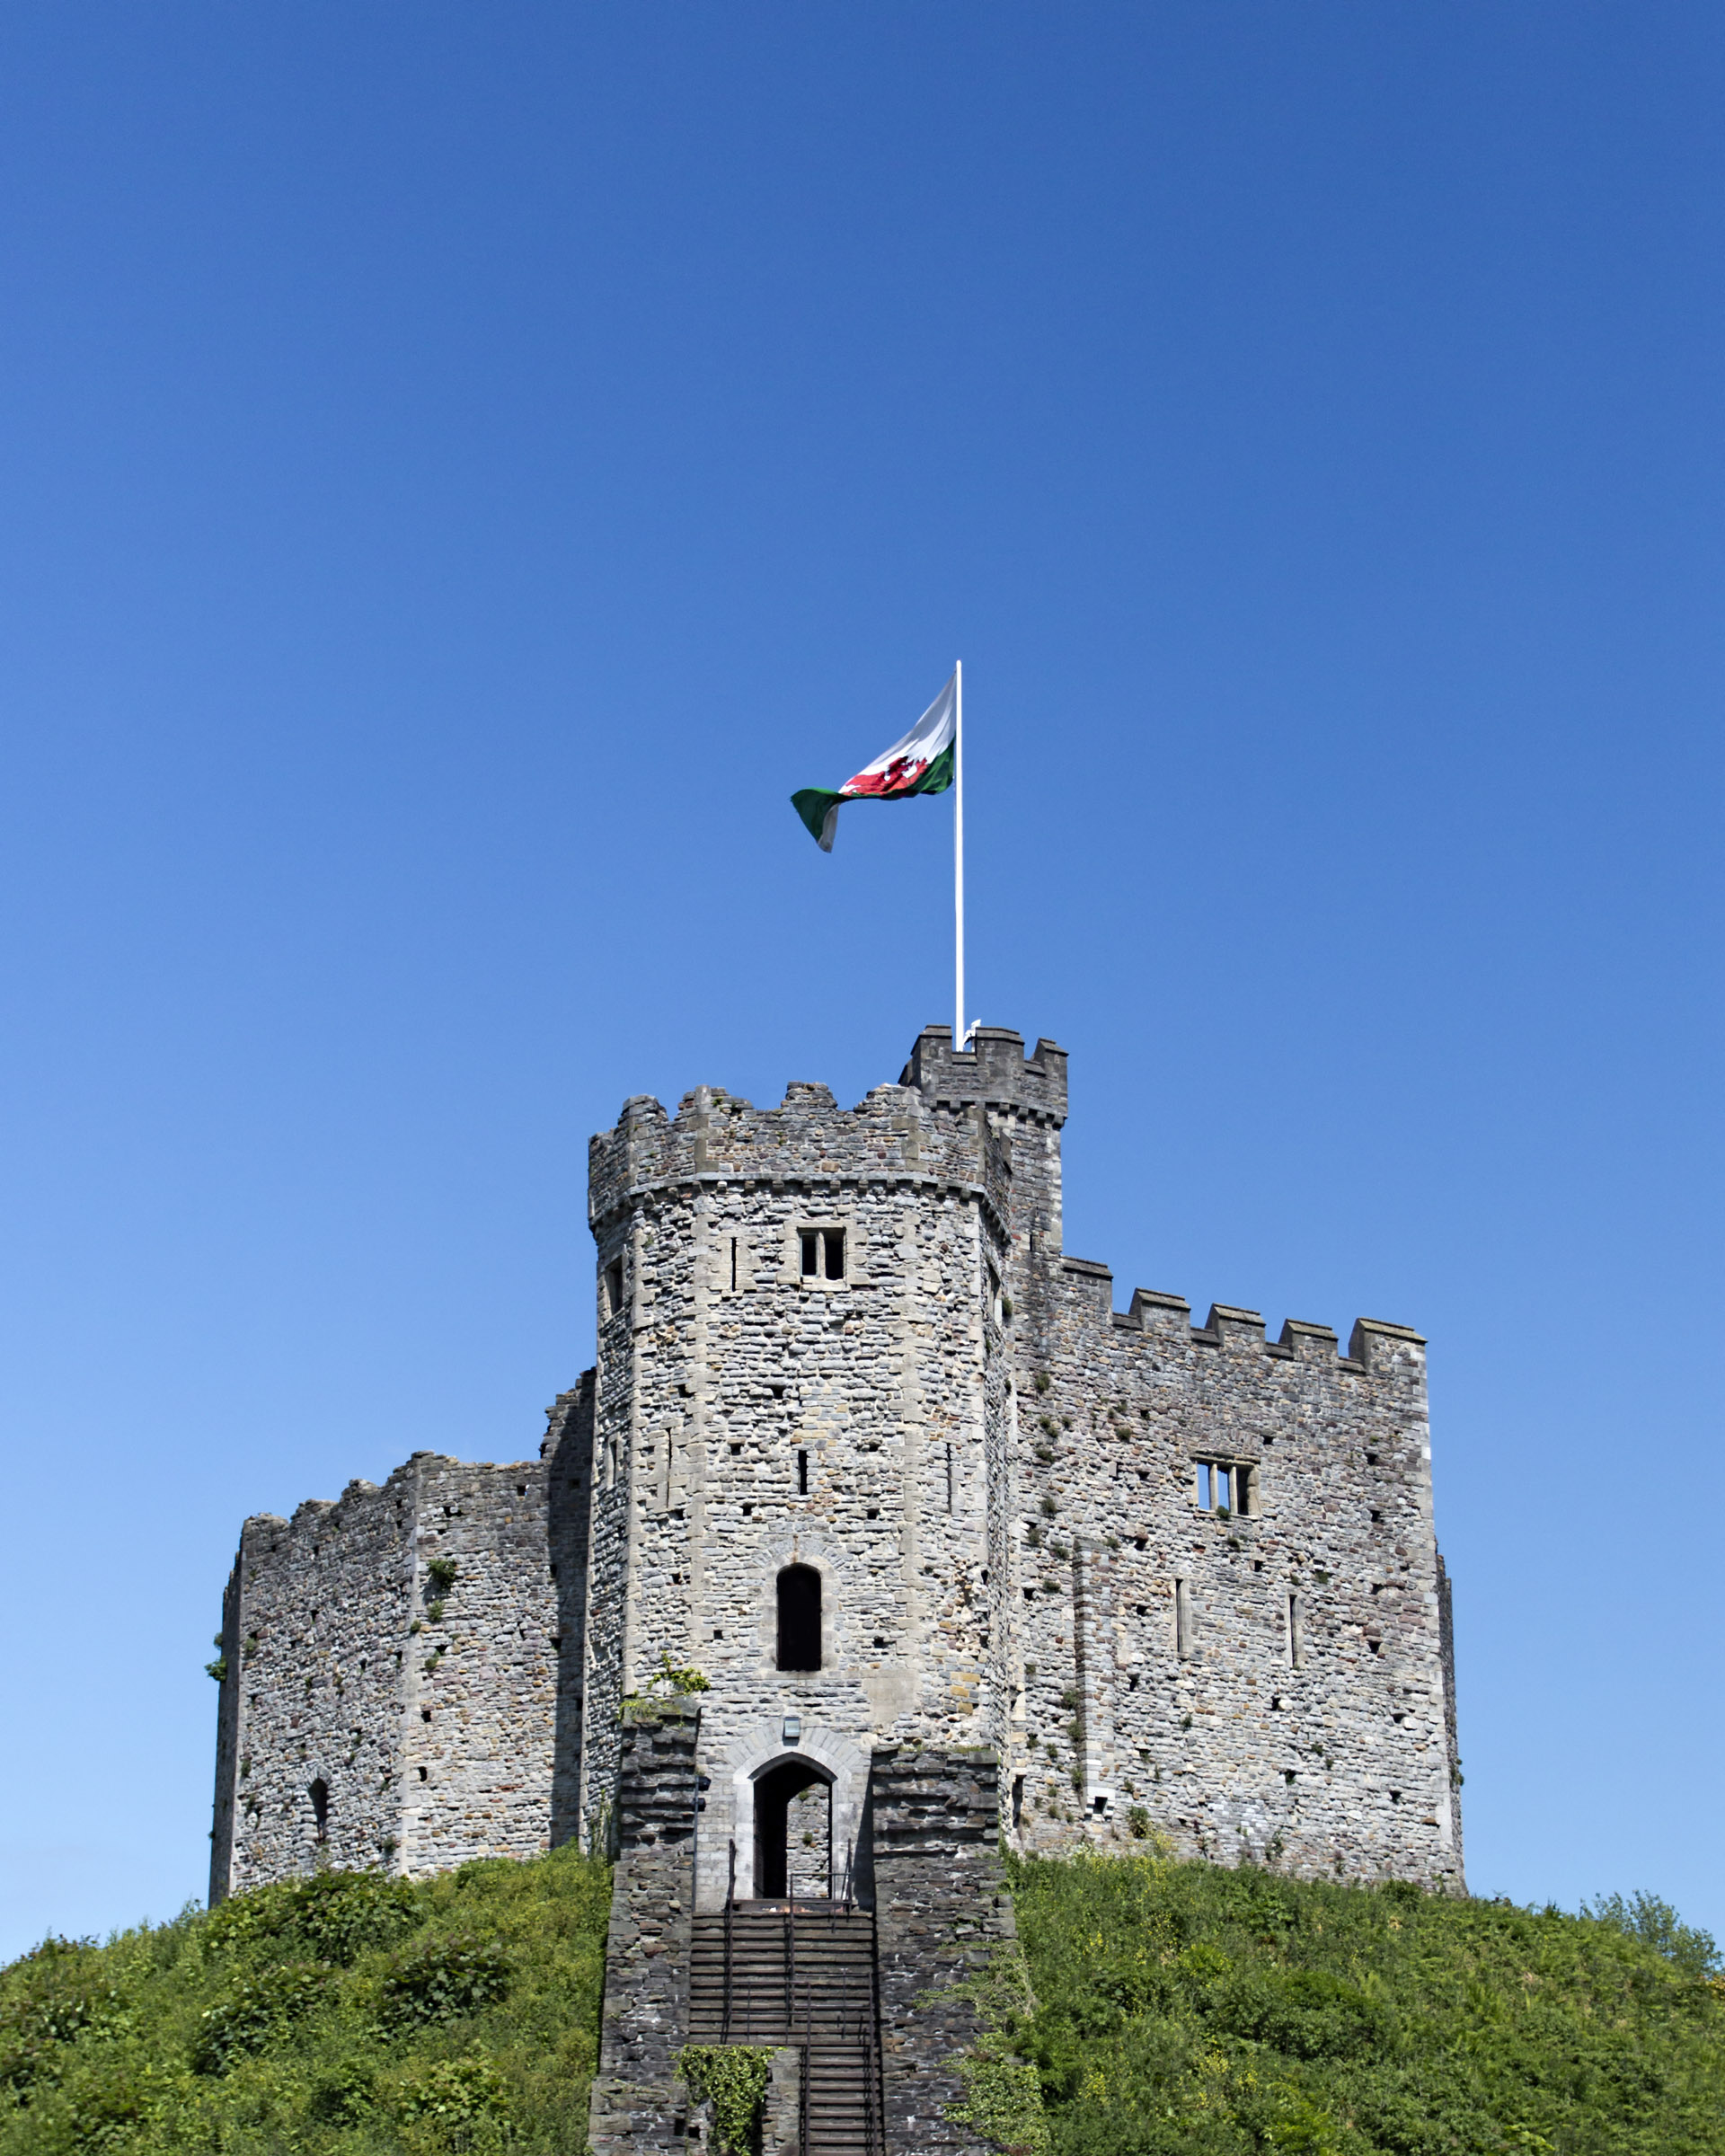 Cardiff Castle, Ancient, Spire, National, Norman, HQ Photo